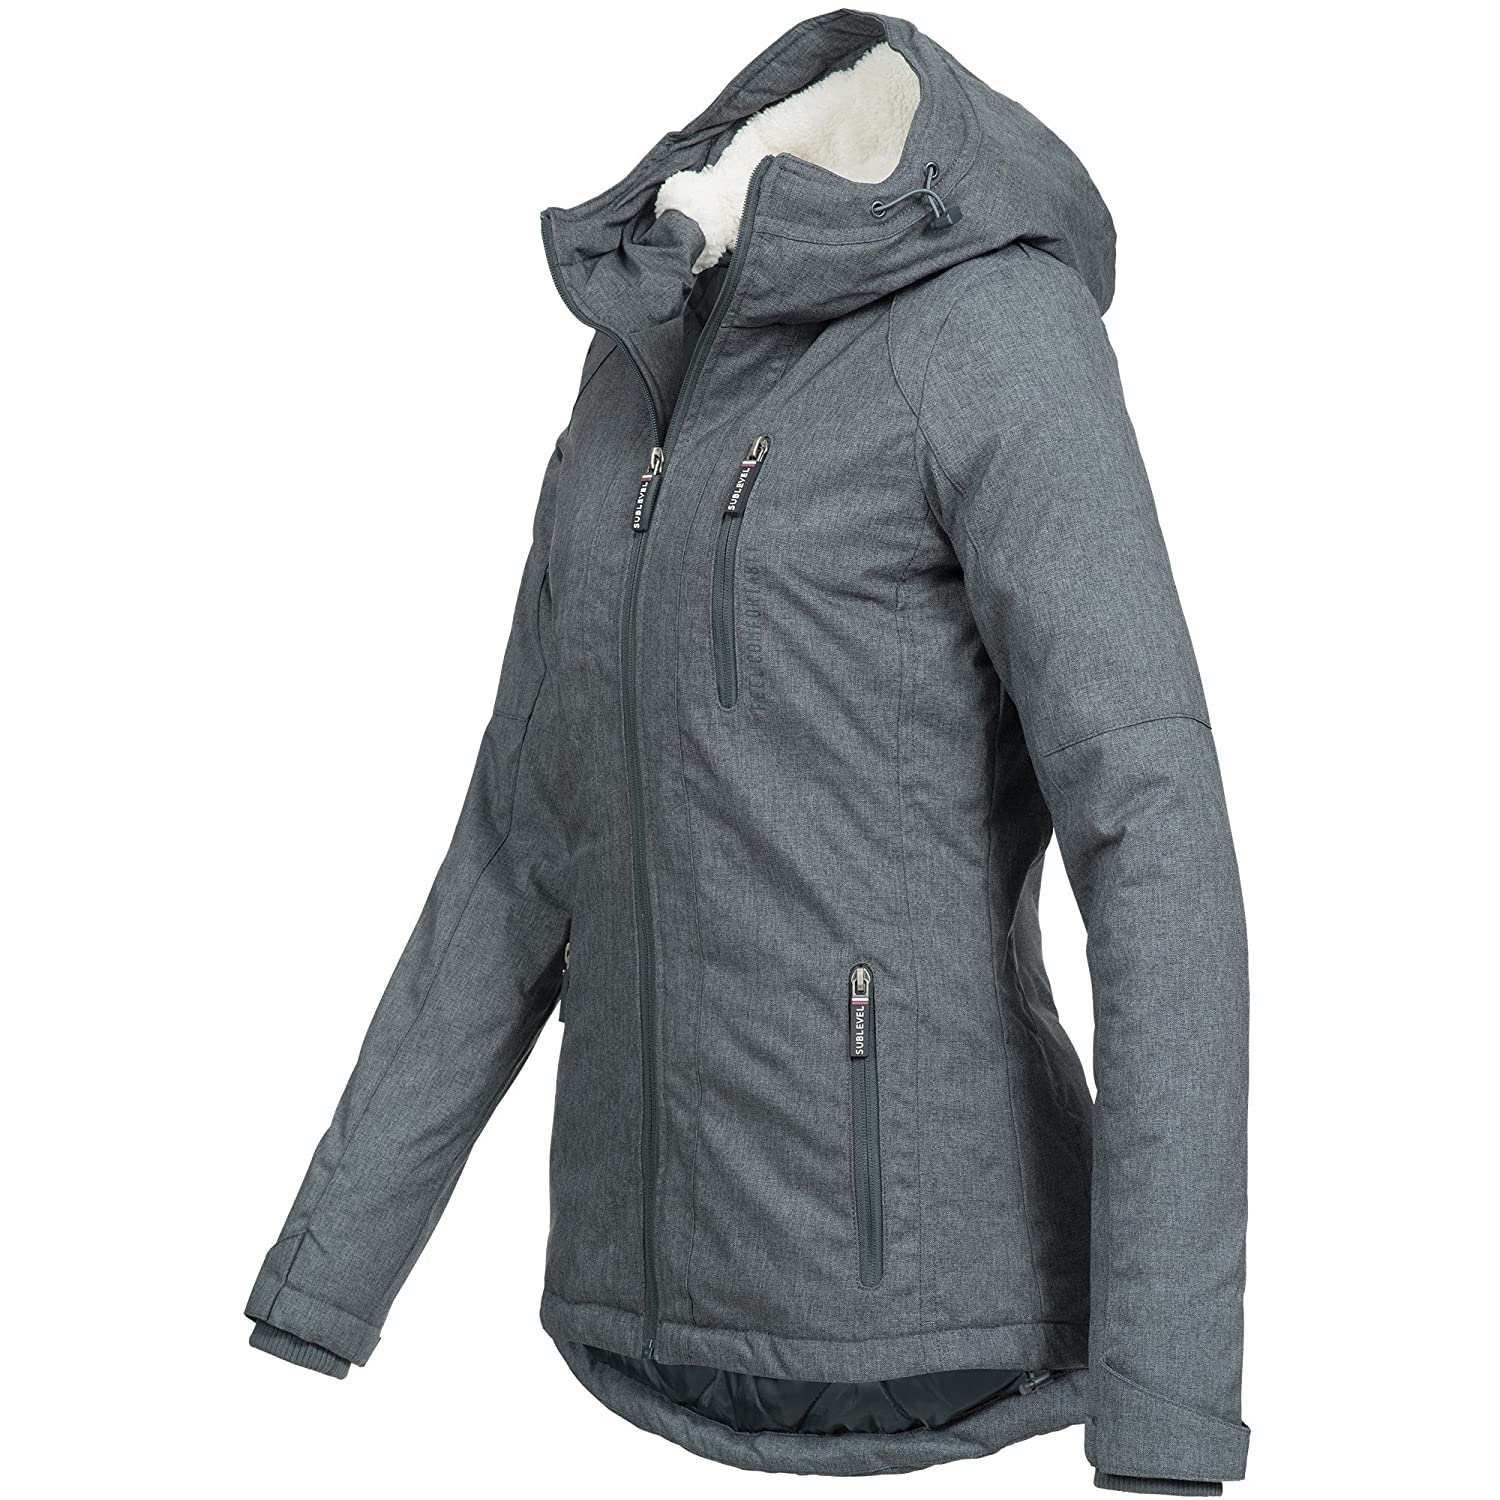 Sublevel Damen Winter Jacke Winterjacke Mantel Parka Outdoor